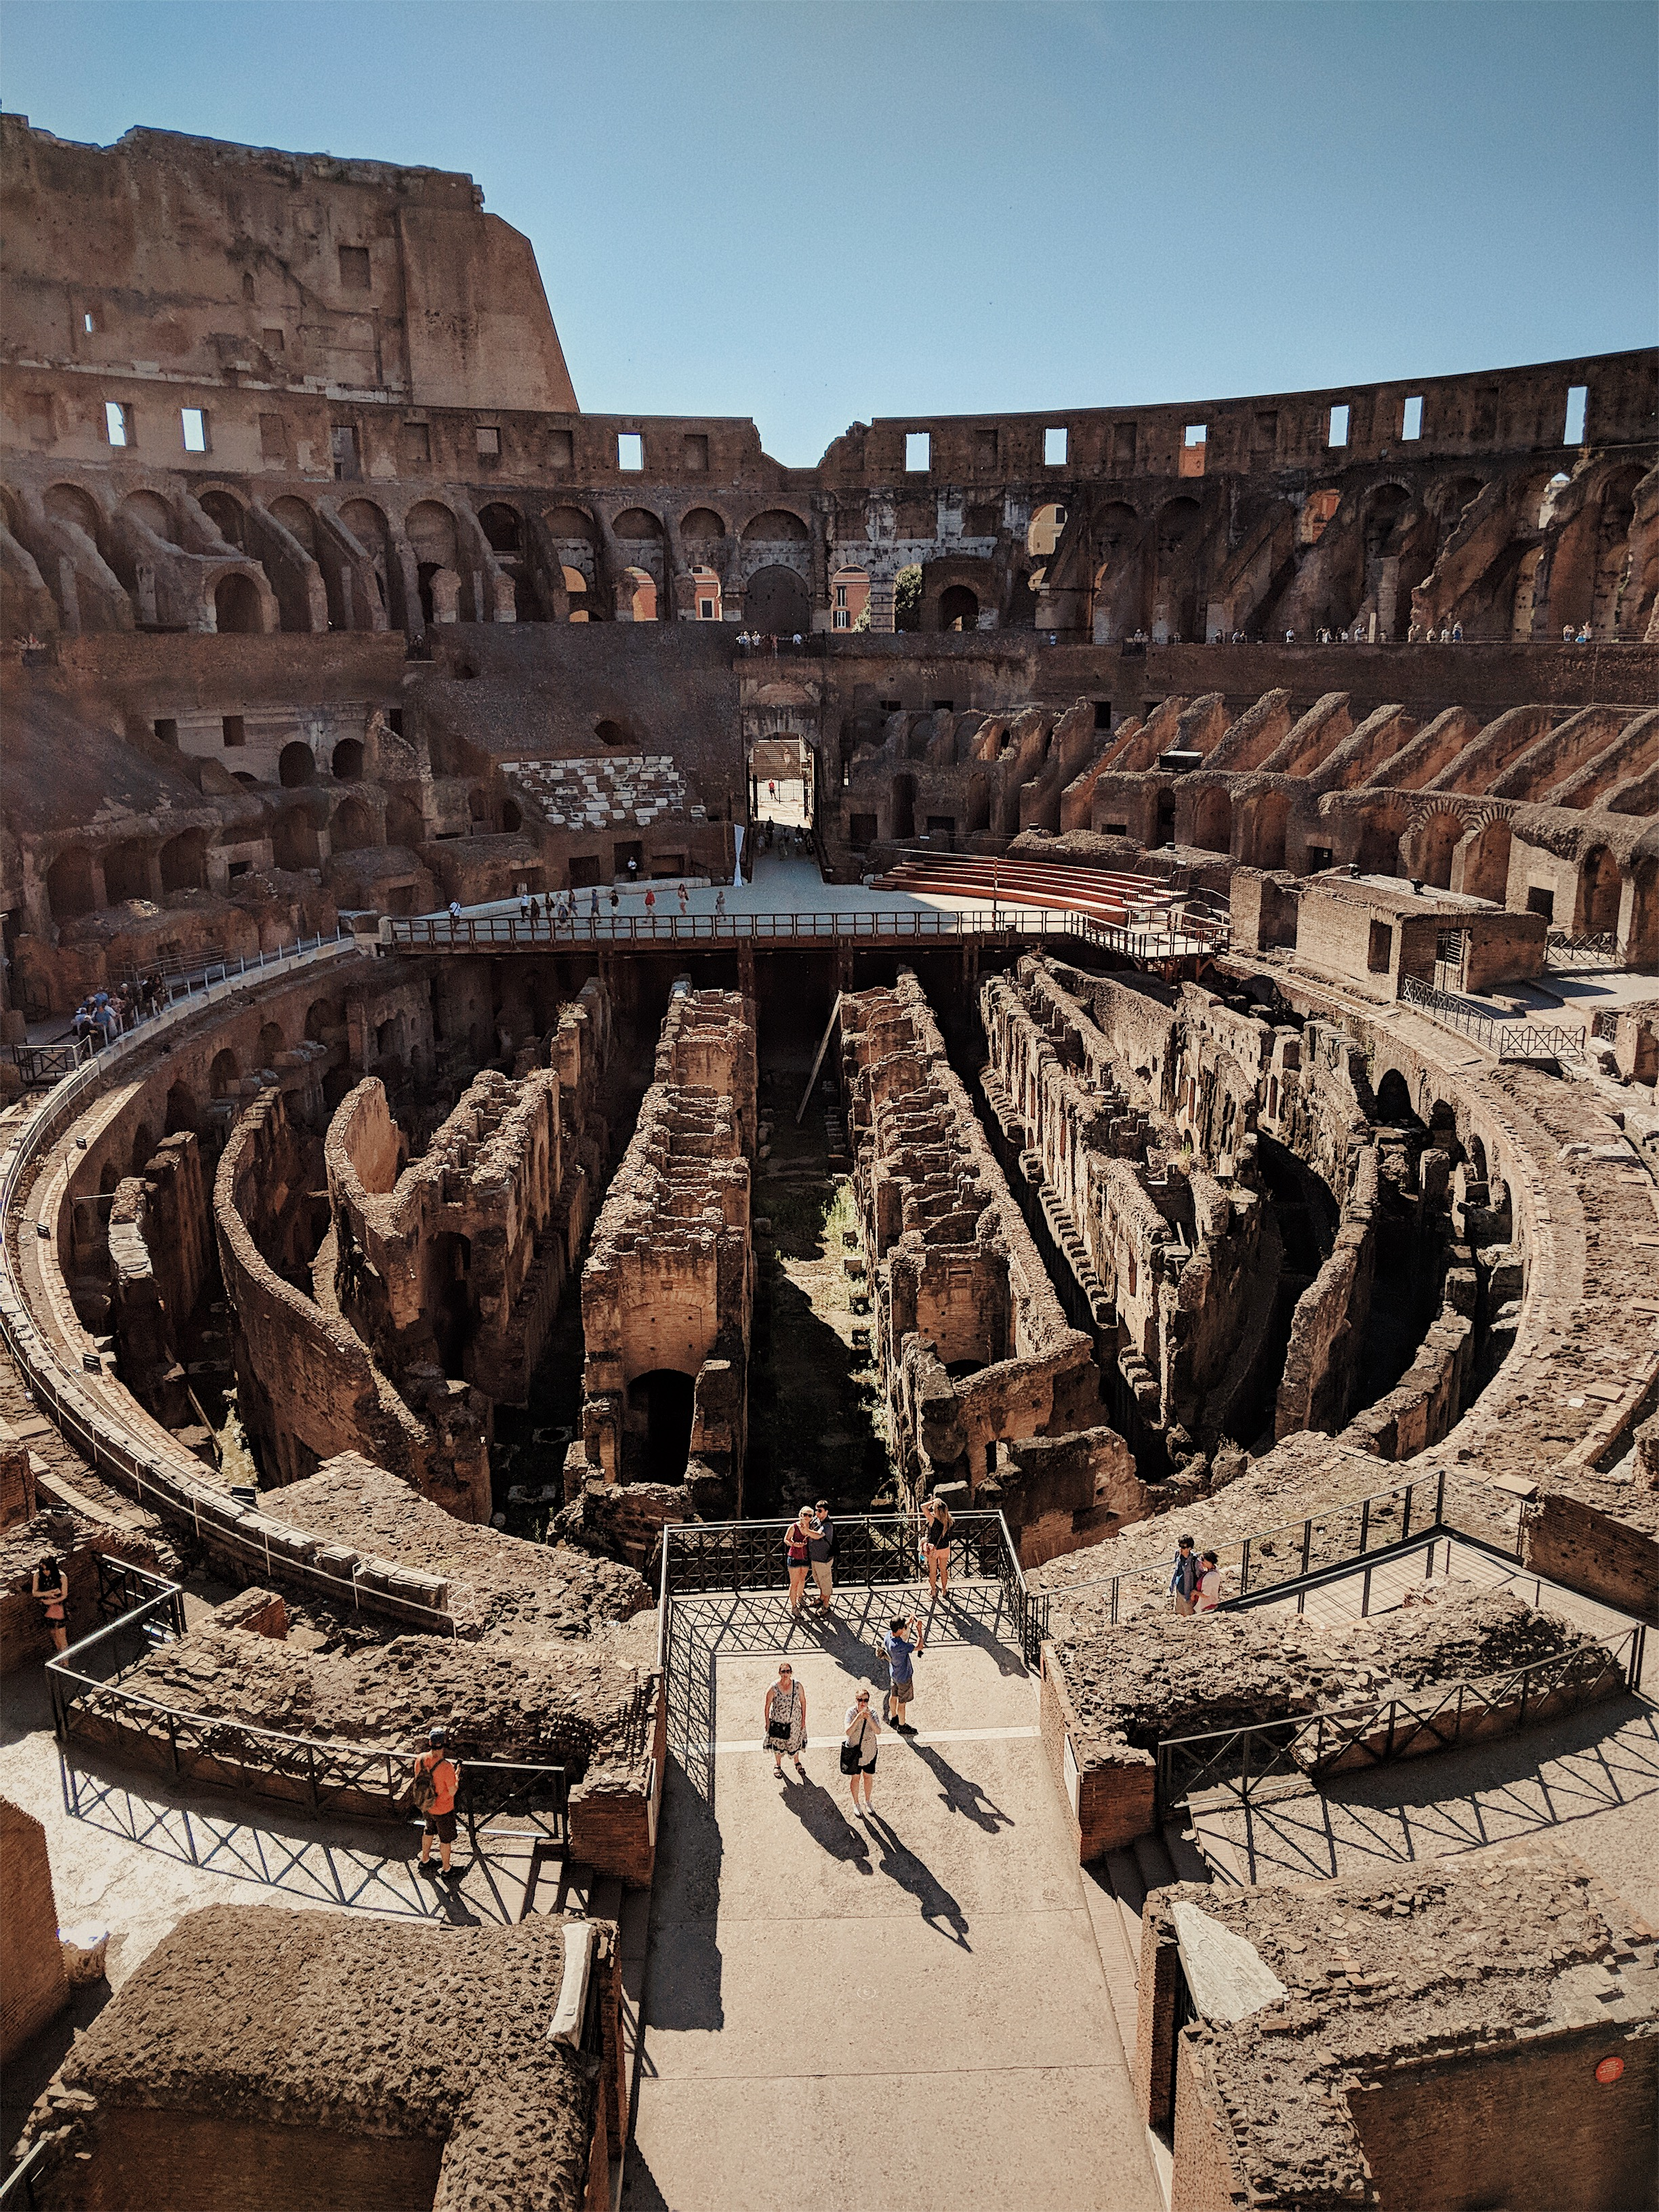 Inside the Colosseum in Rome | Italy Travel Diary + Vlog Part 1